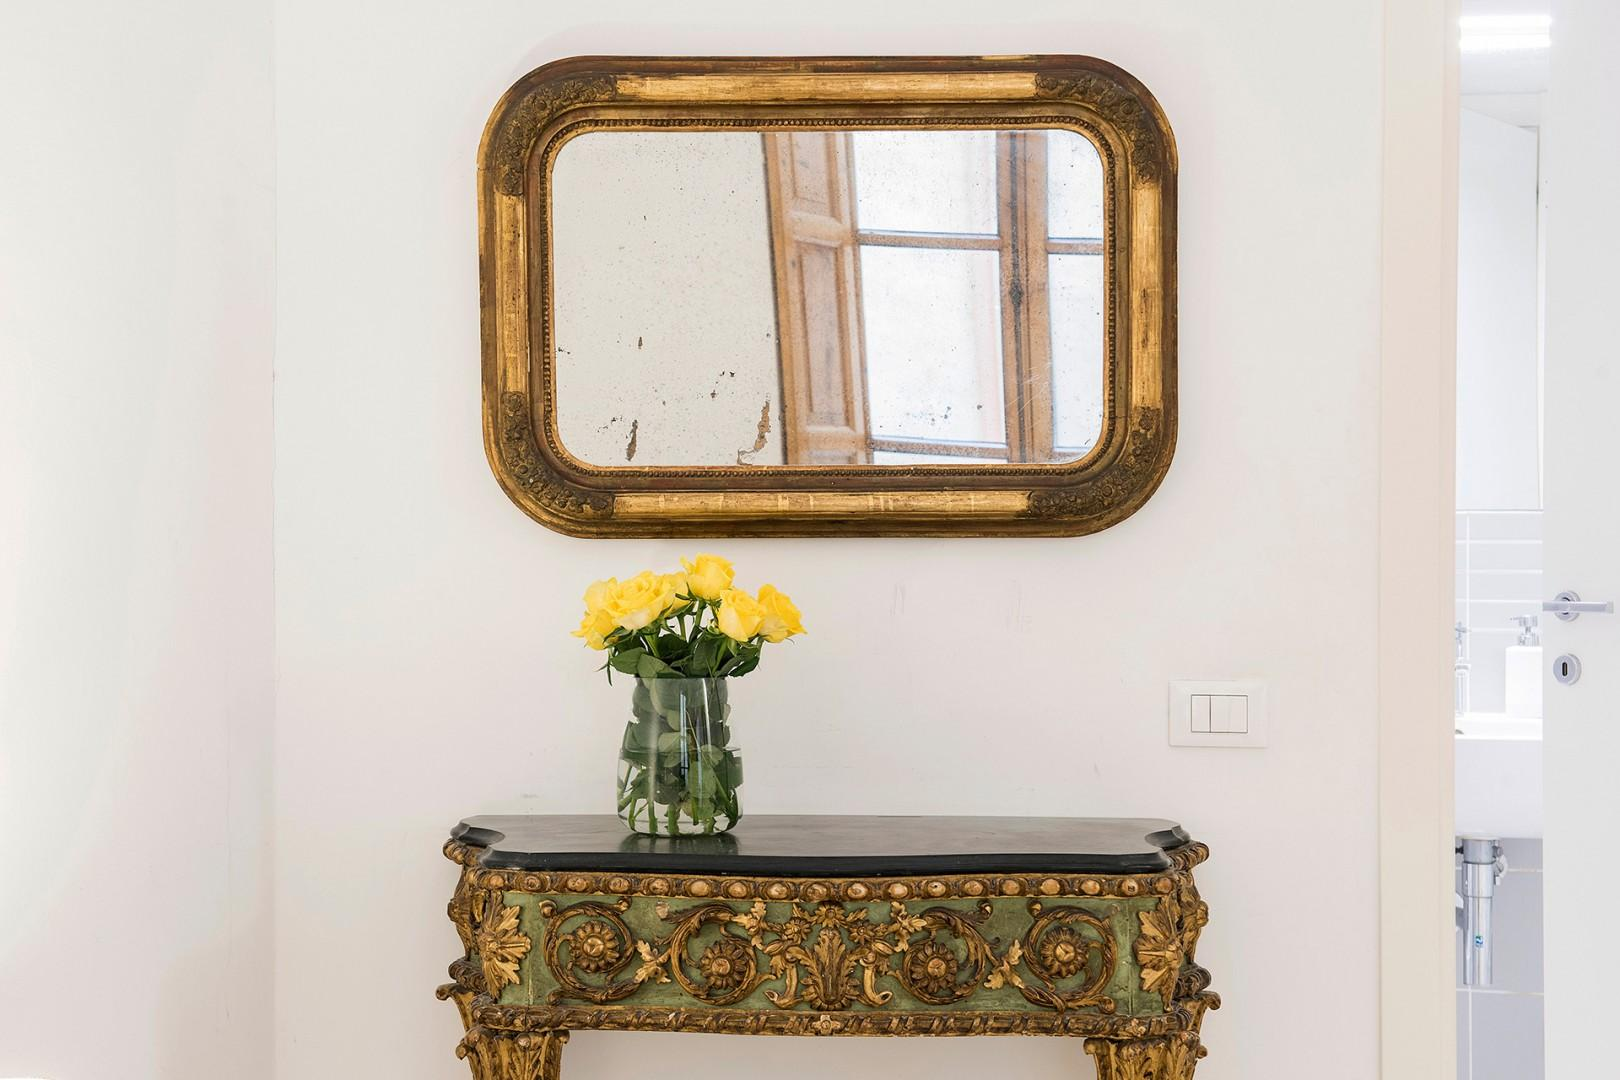 Beautiful antique side table in bedroom 1.